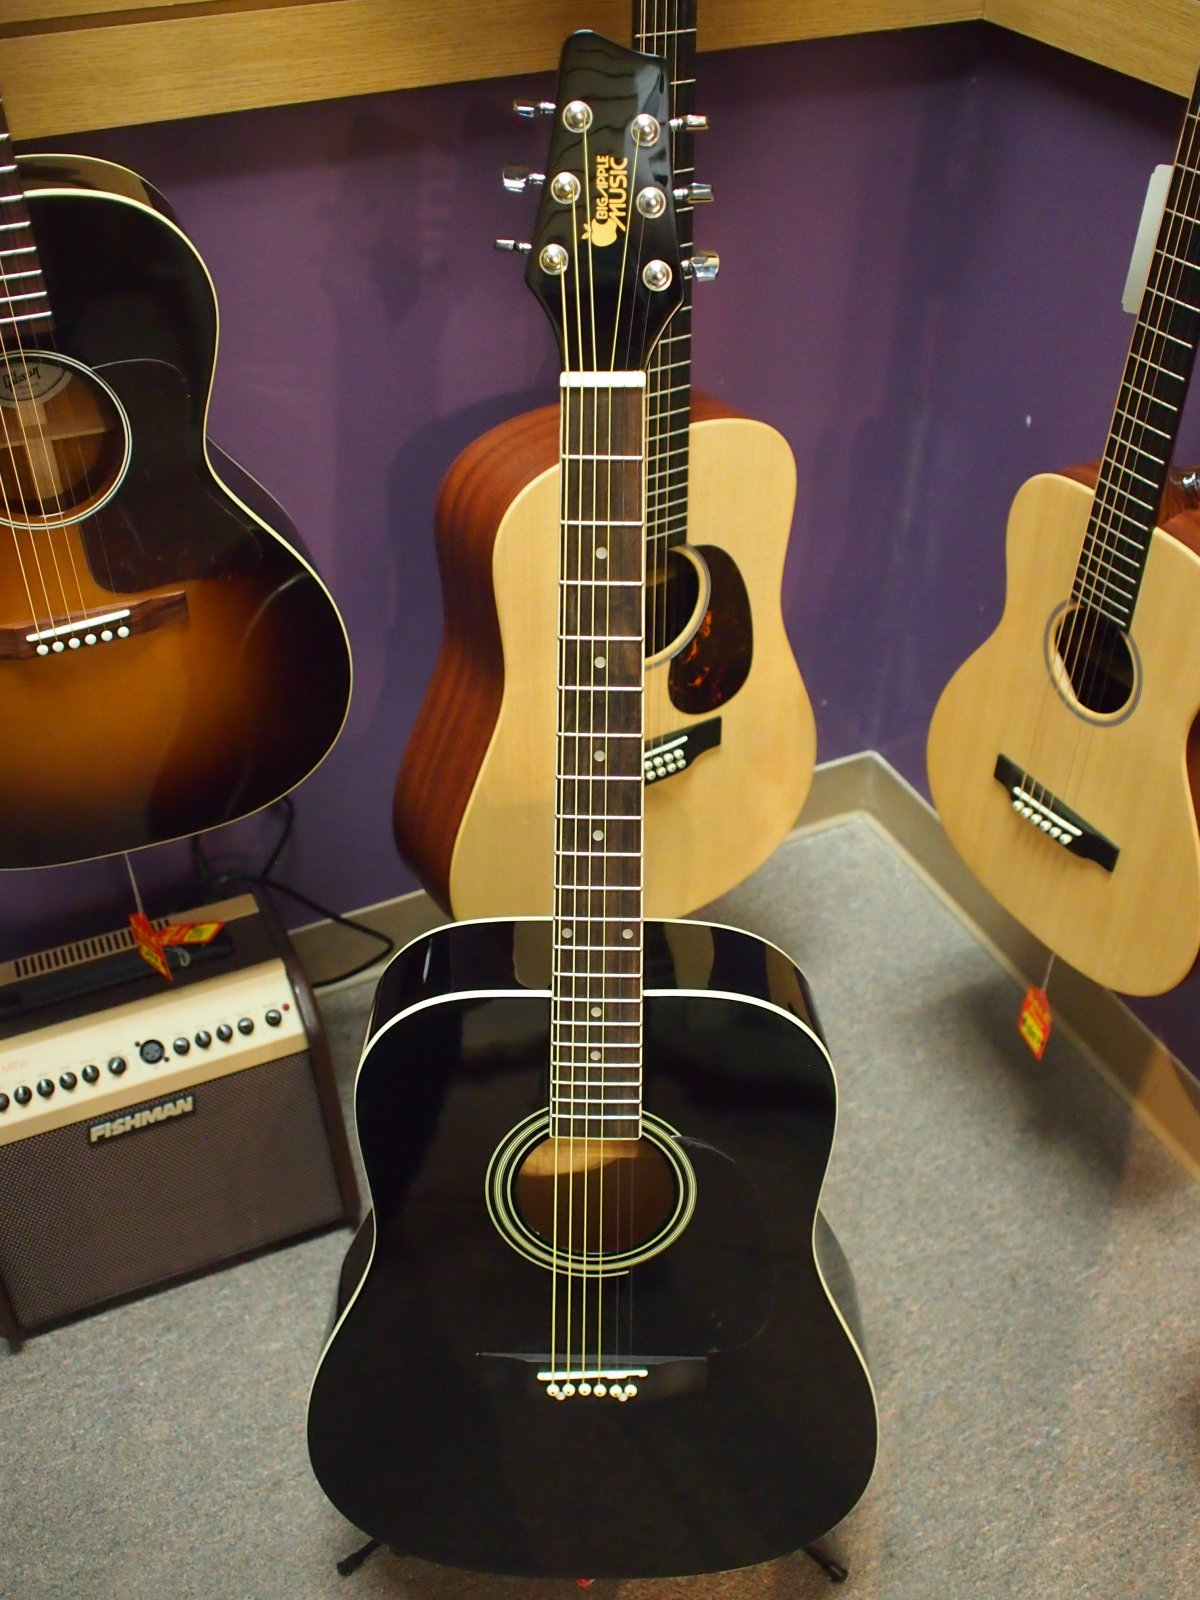 Big Apple Music Acoustic Guitar - Black